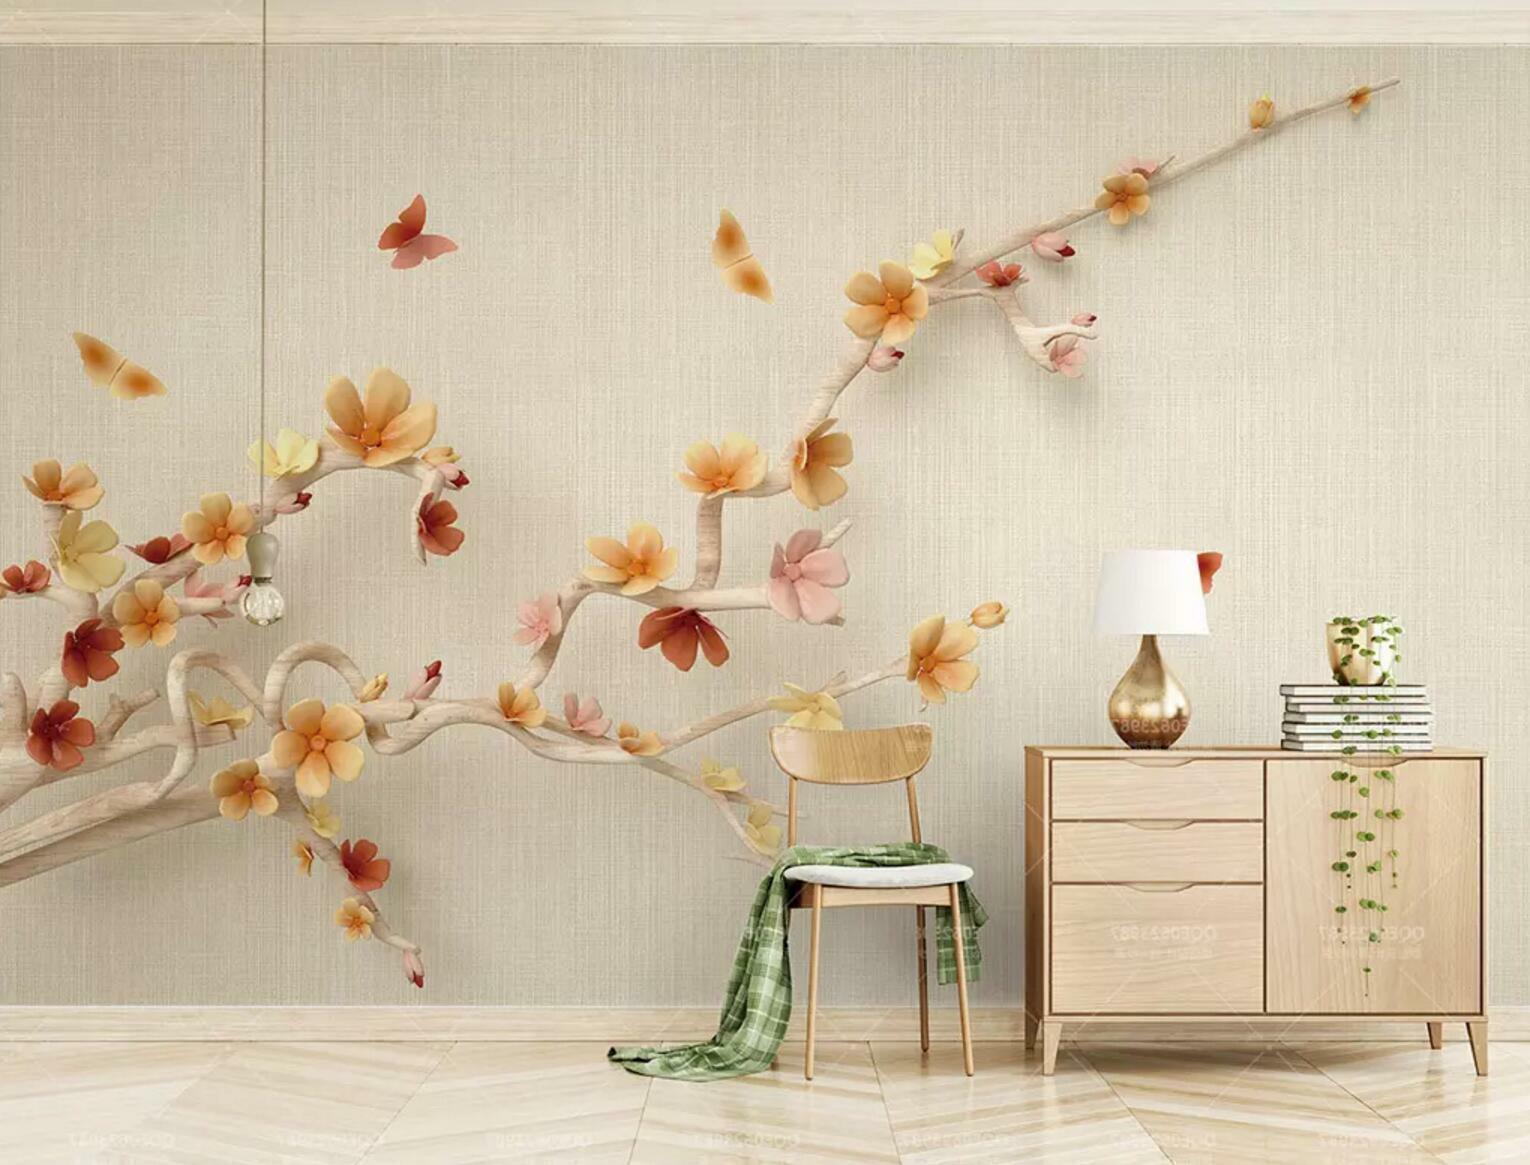 3D Butterflys Tree 56 Wall Paper Exclusive MXY Wallpaper Mural Decal Indoor wall